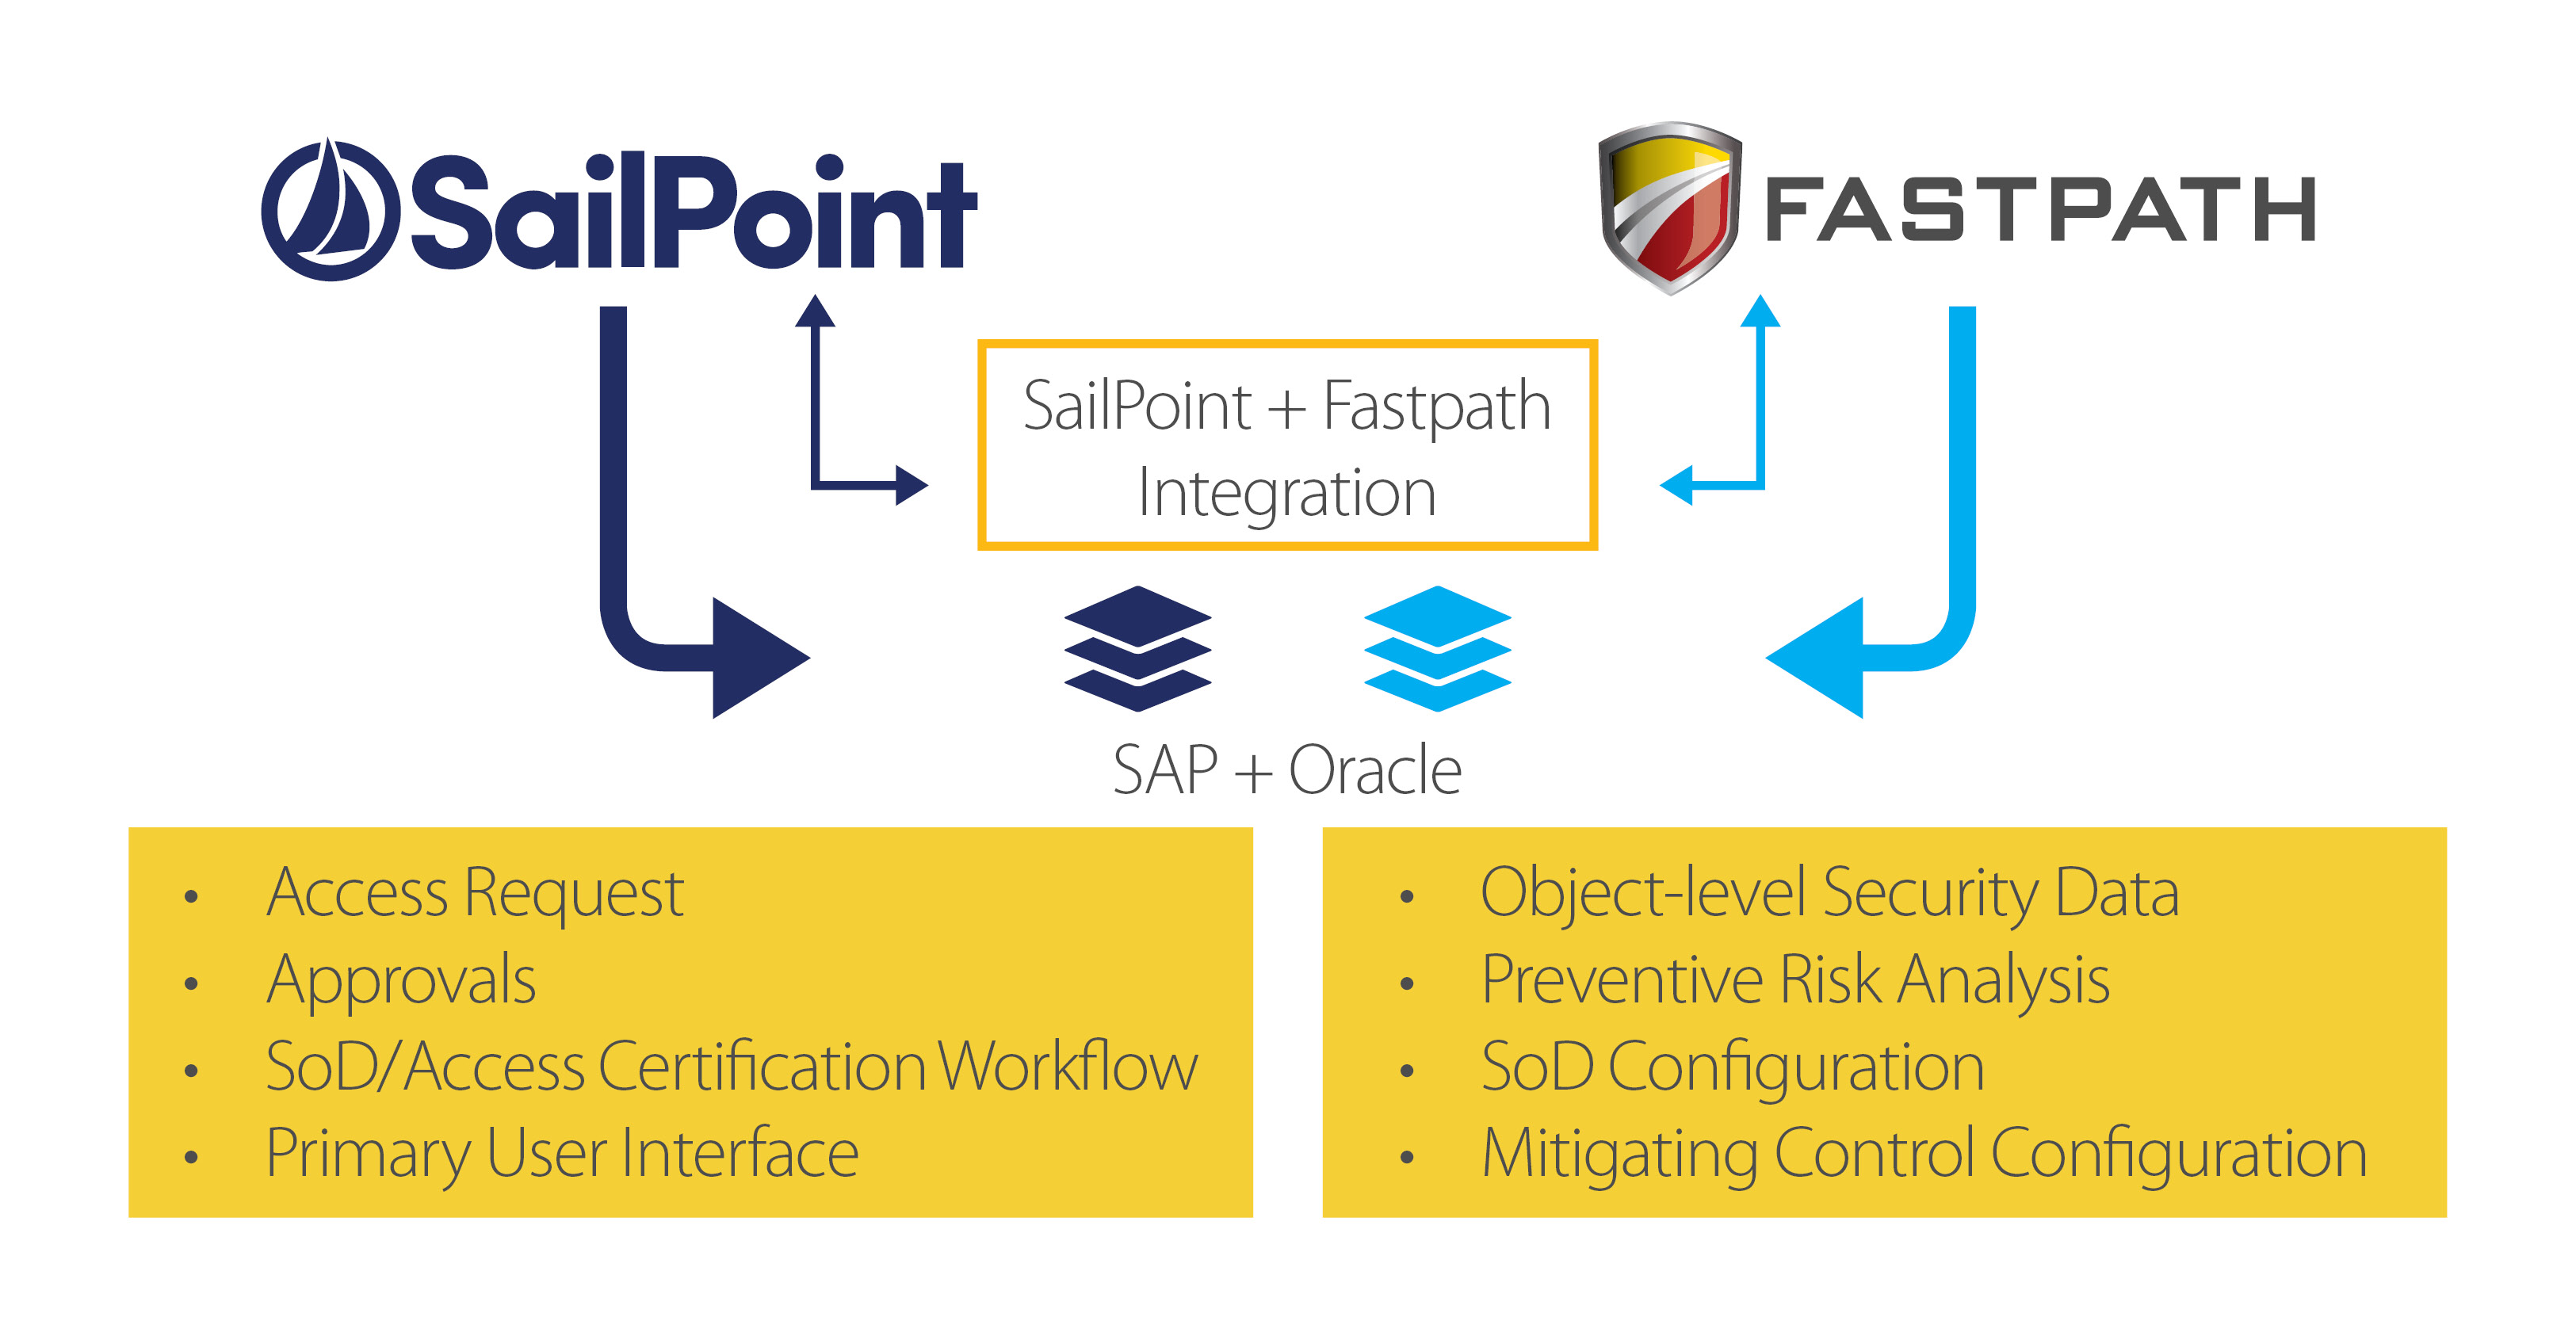 SailPoint Fastpath Integration for Identity & Access Controls